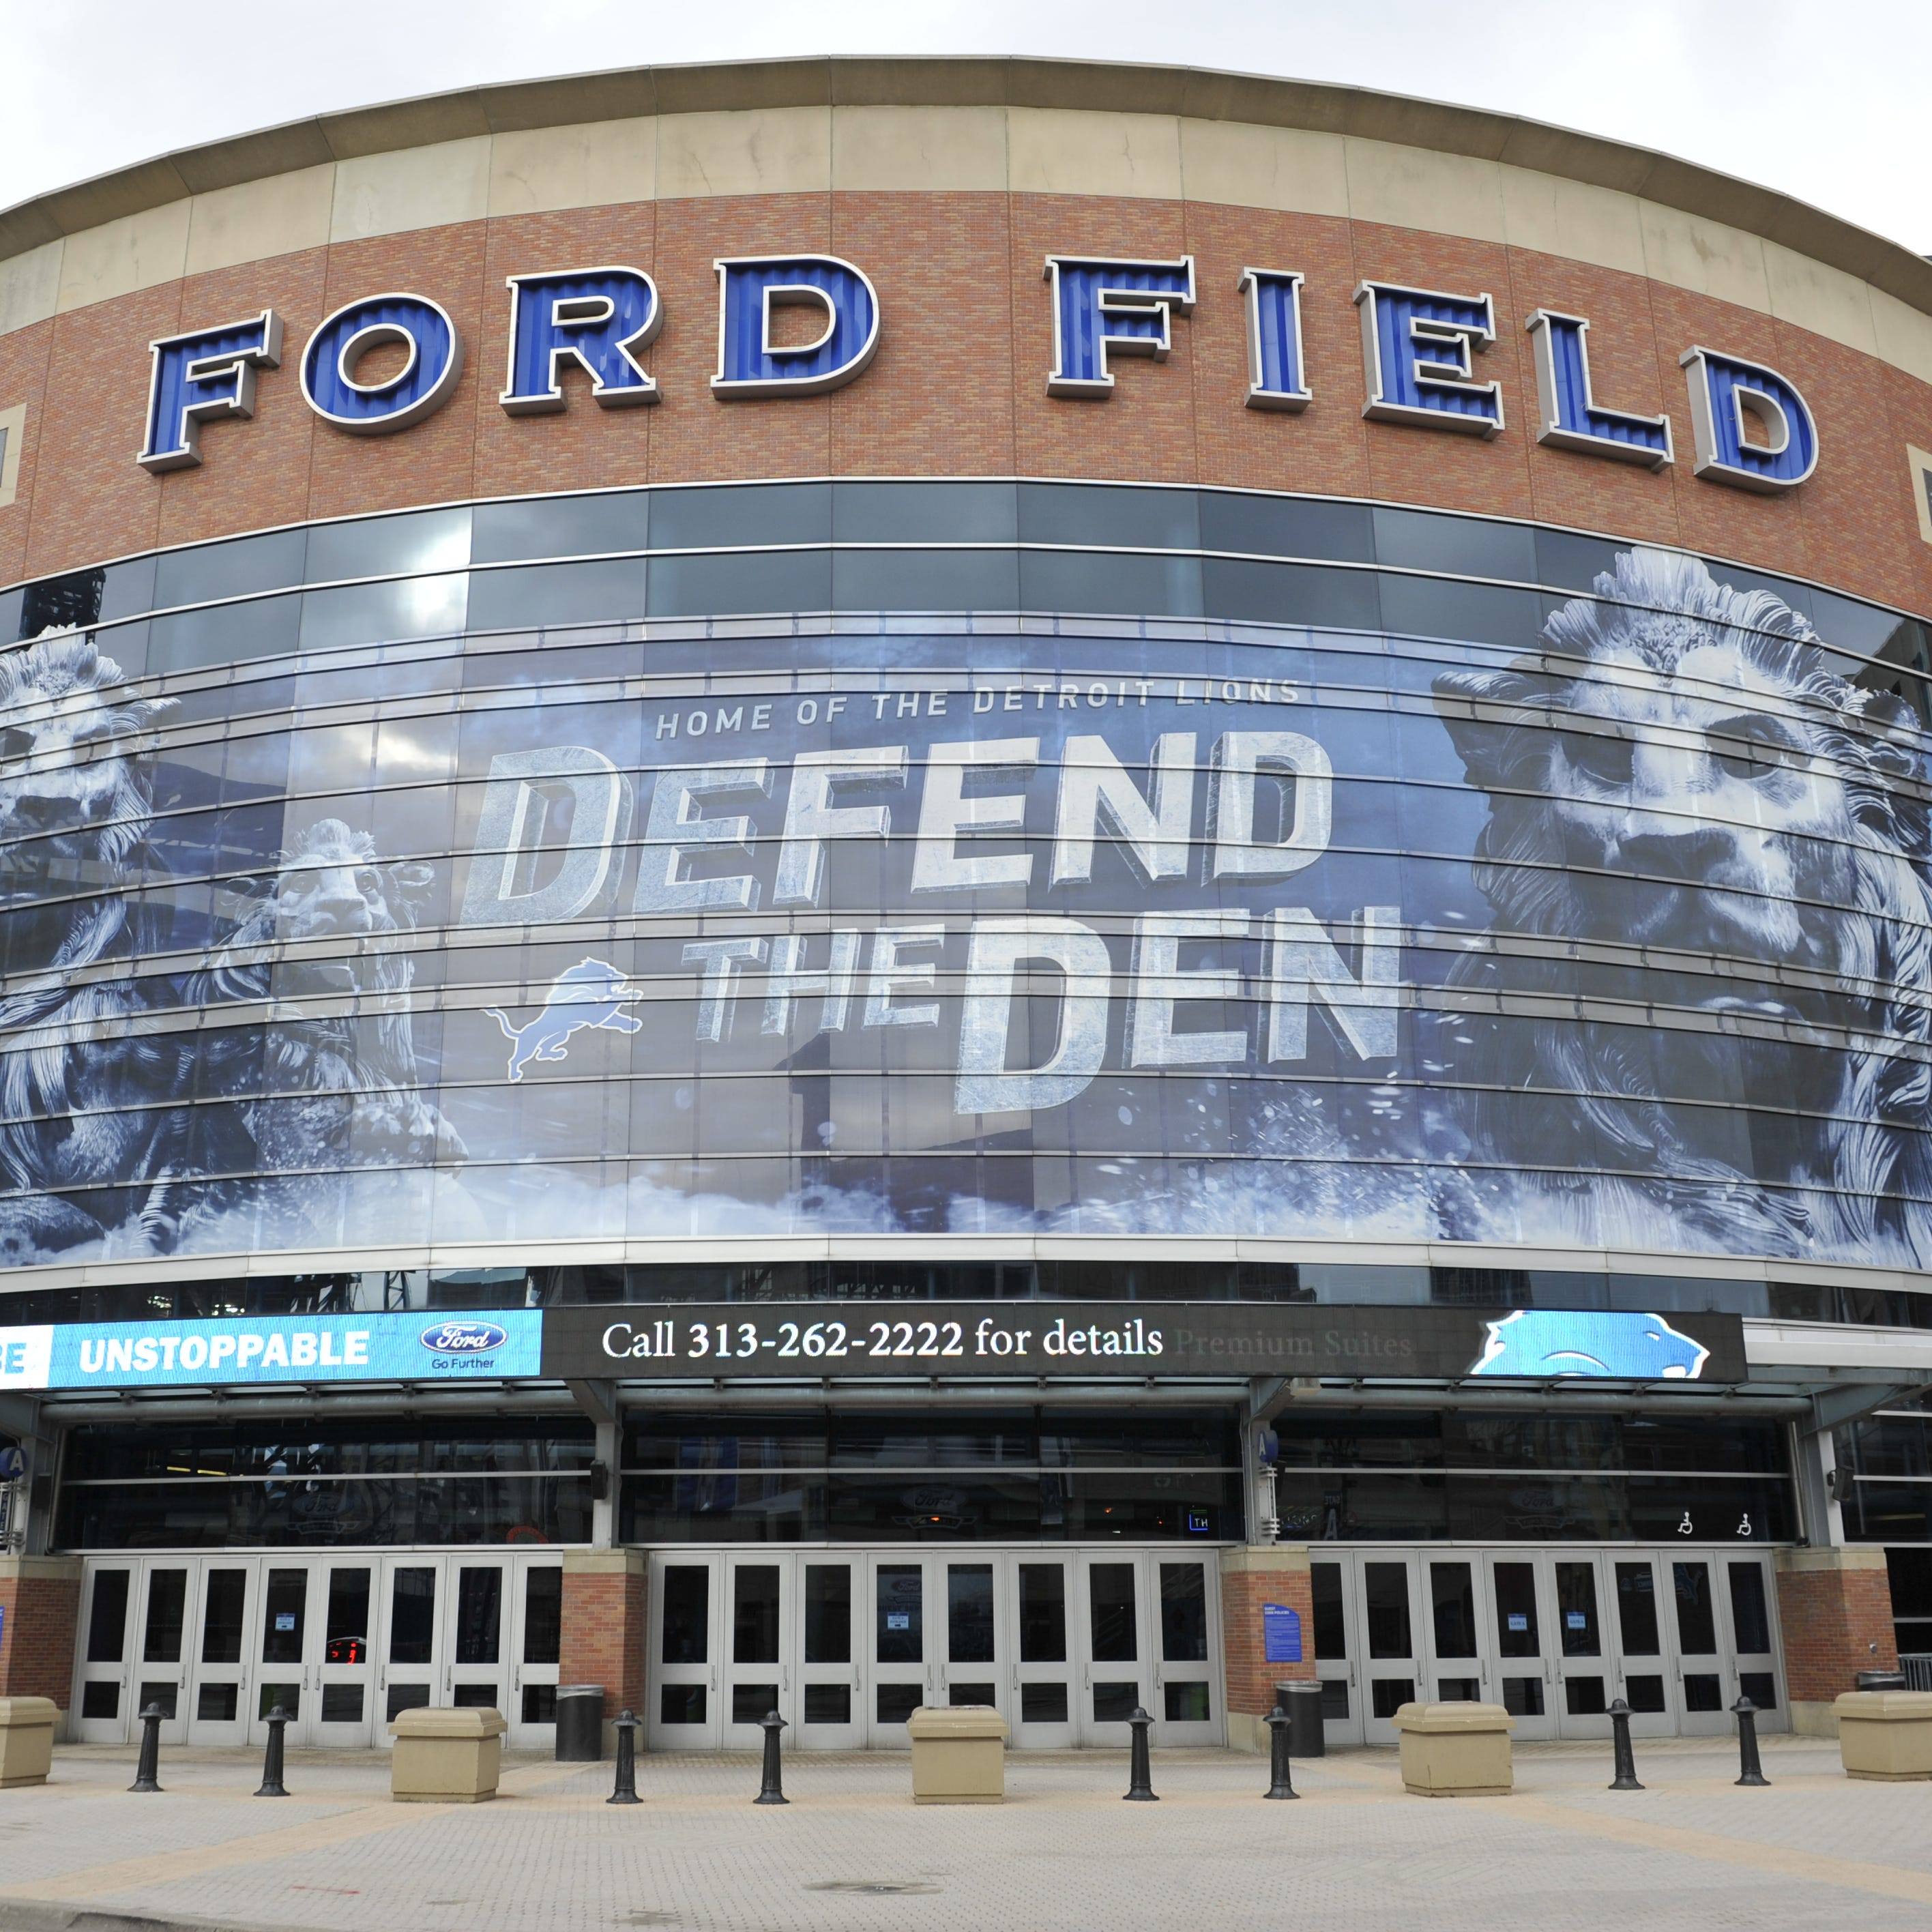 Lions change concession prices, including $5 beer